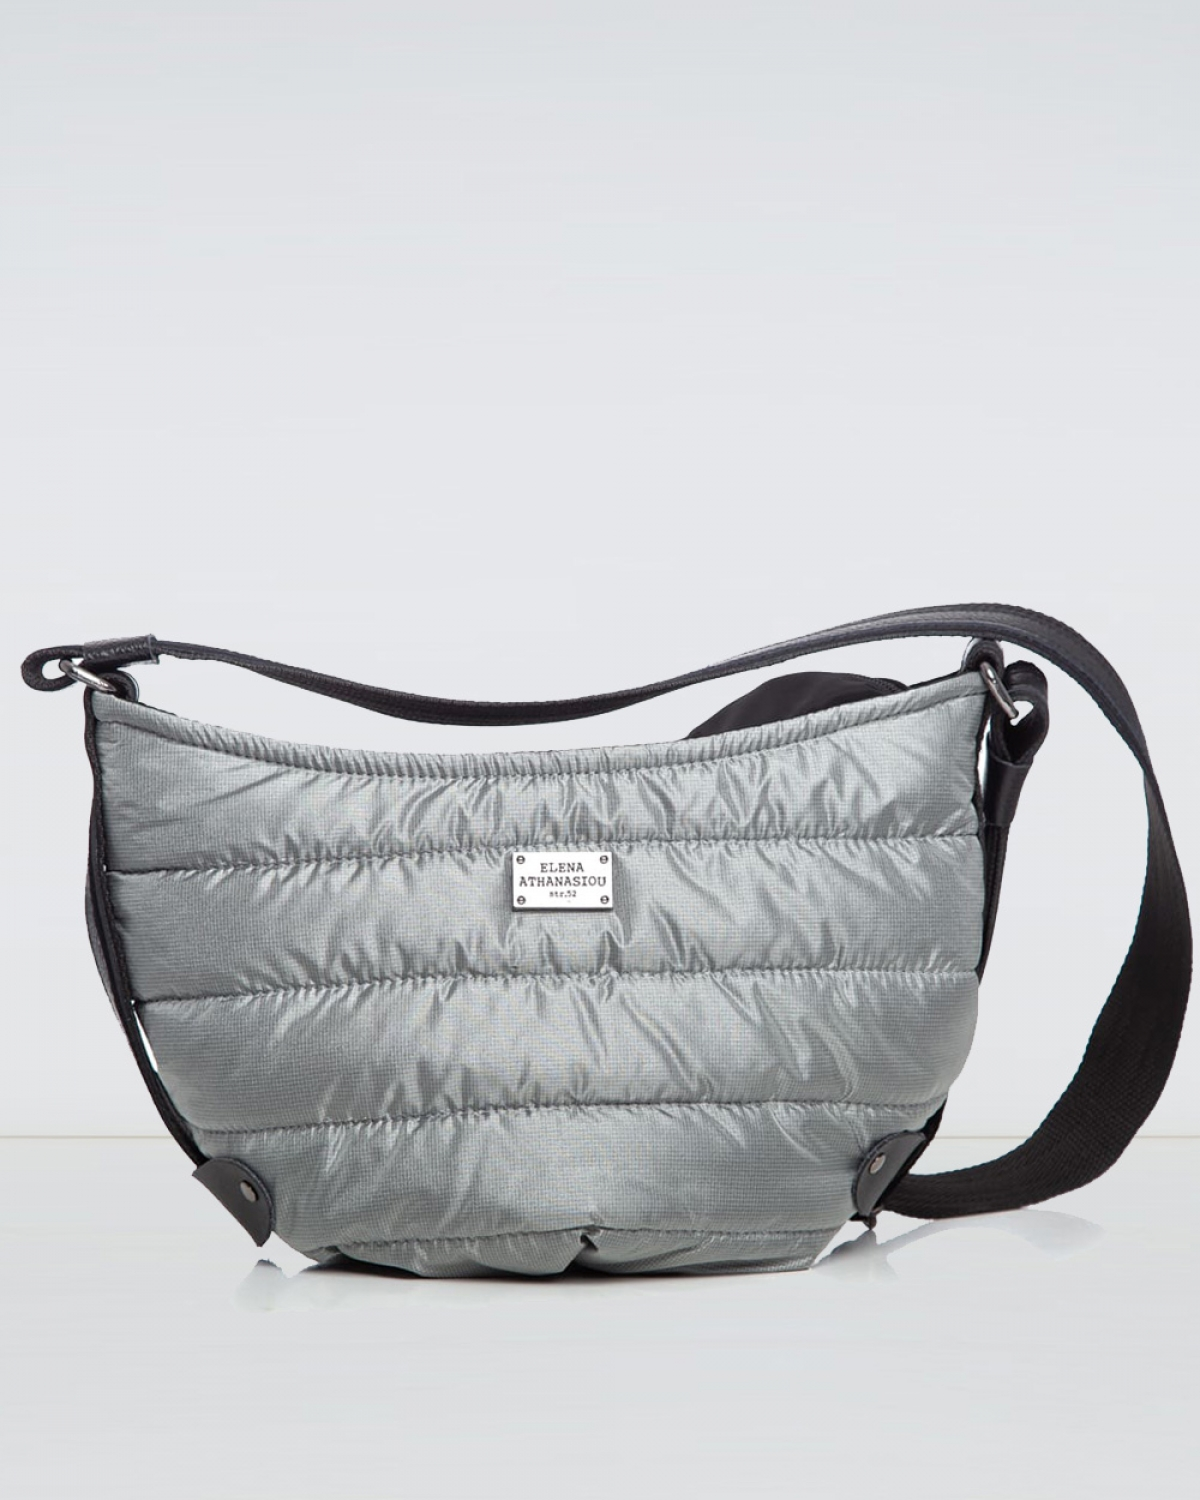 Grey Puffer Large Bοdy Bag